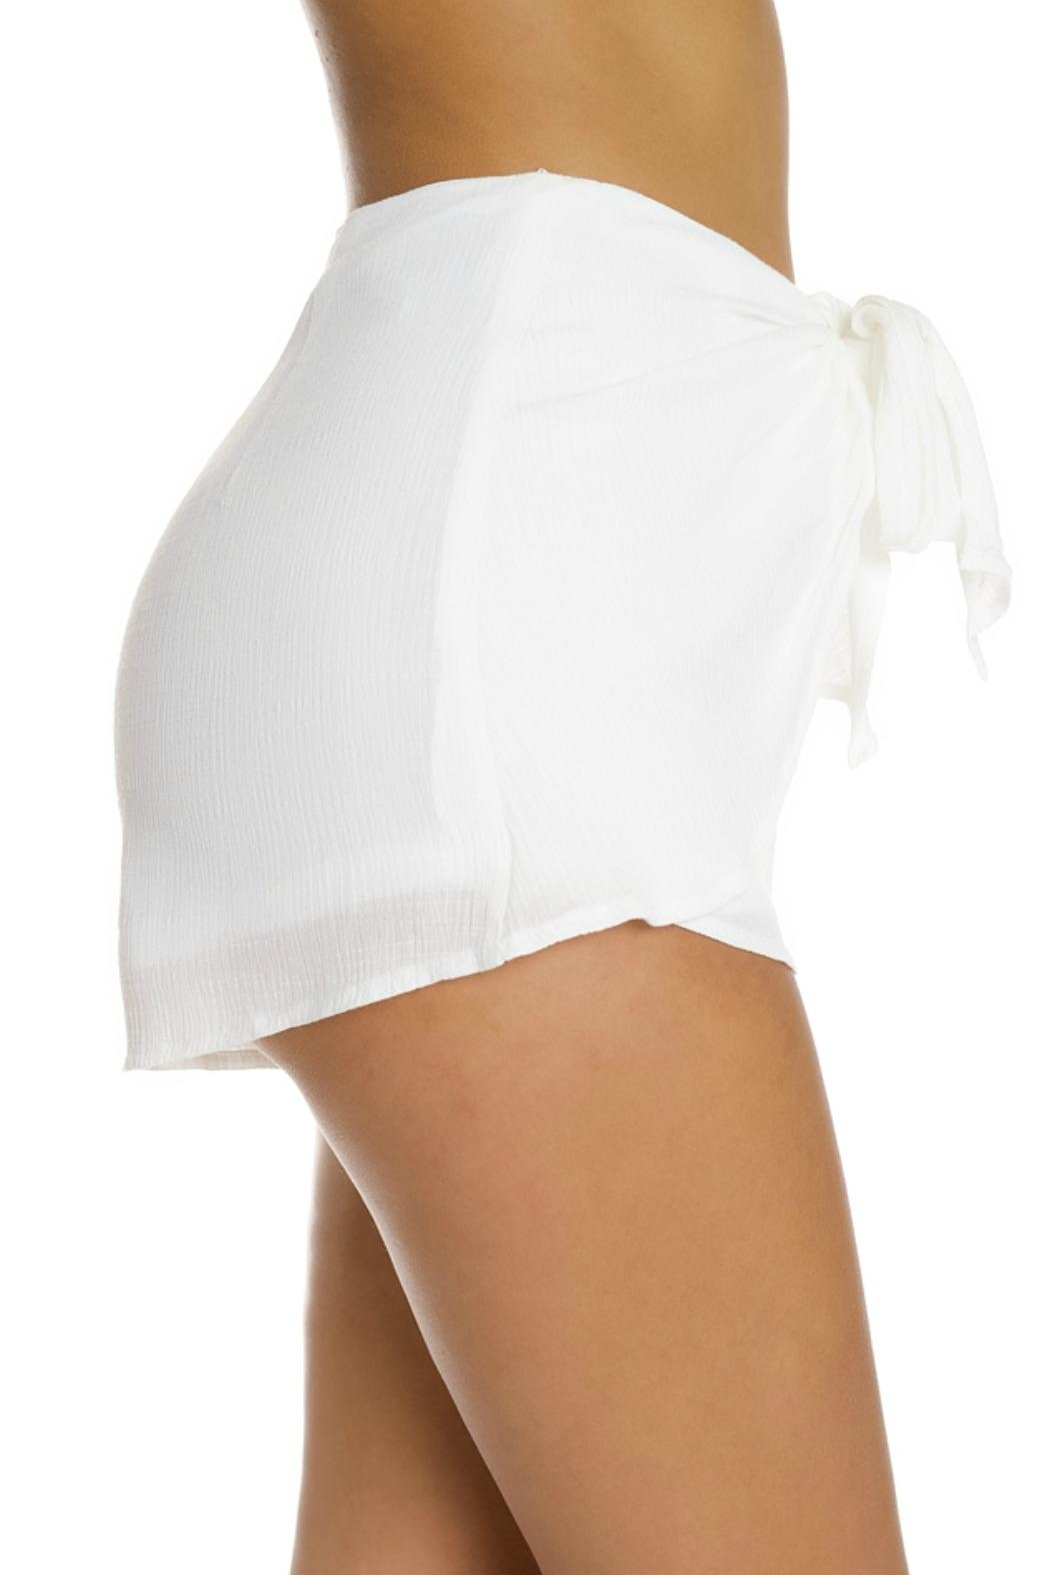 9628c0d1e84 luxxel White Crinkle Shorts from Orlando by Zingara Souls — Shoptiques